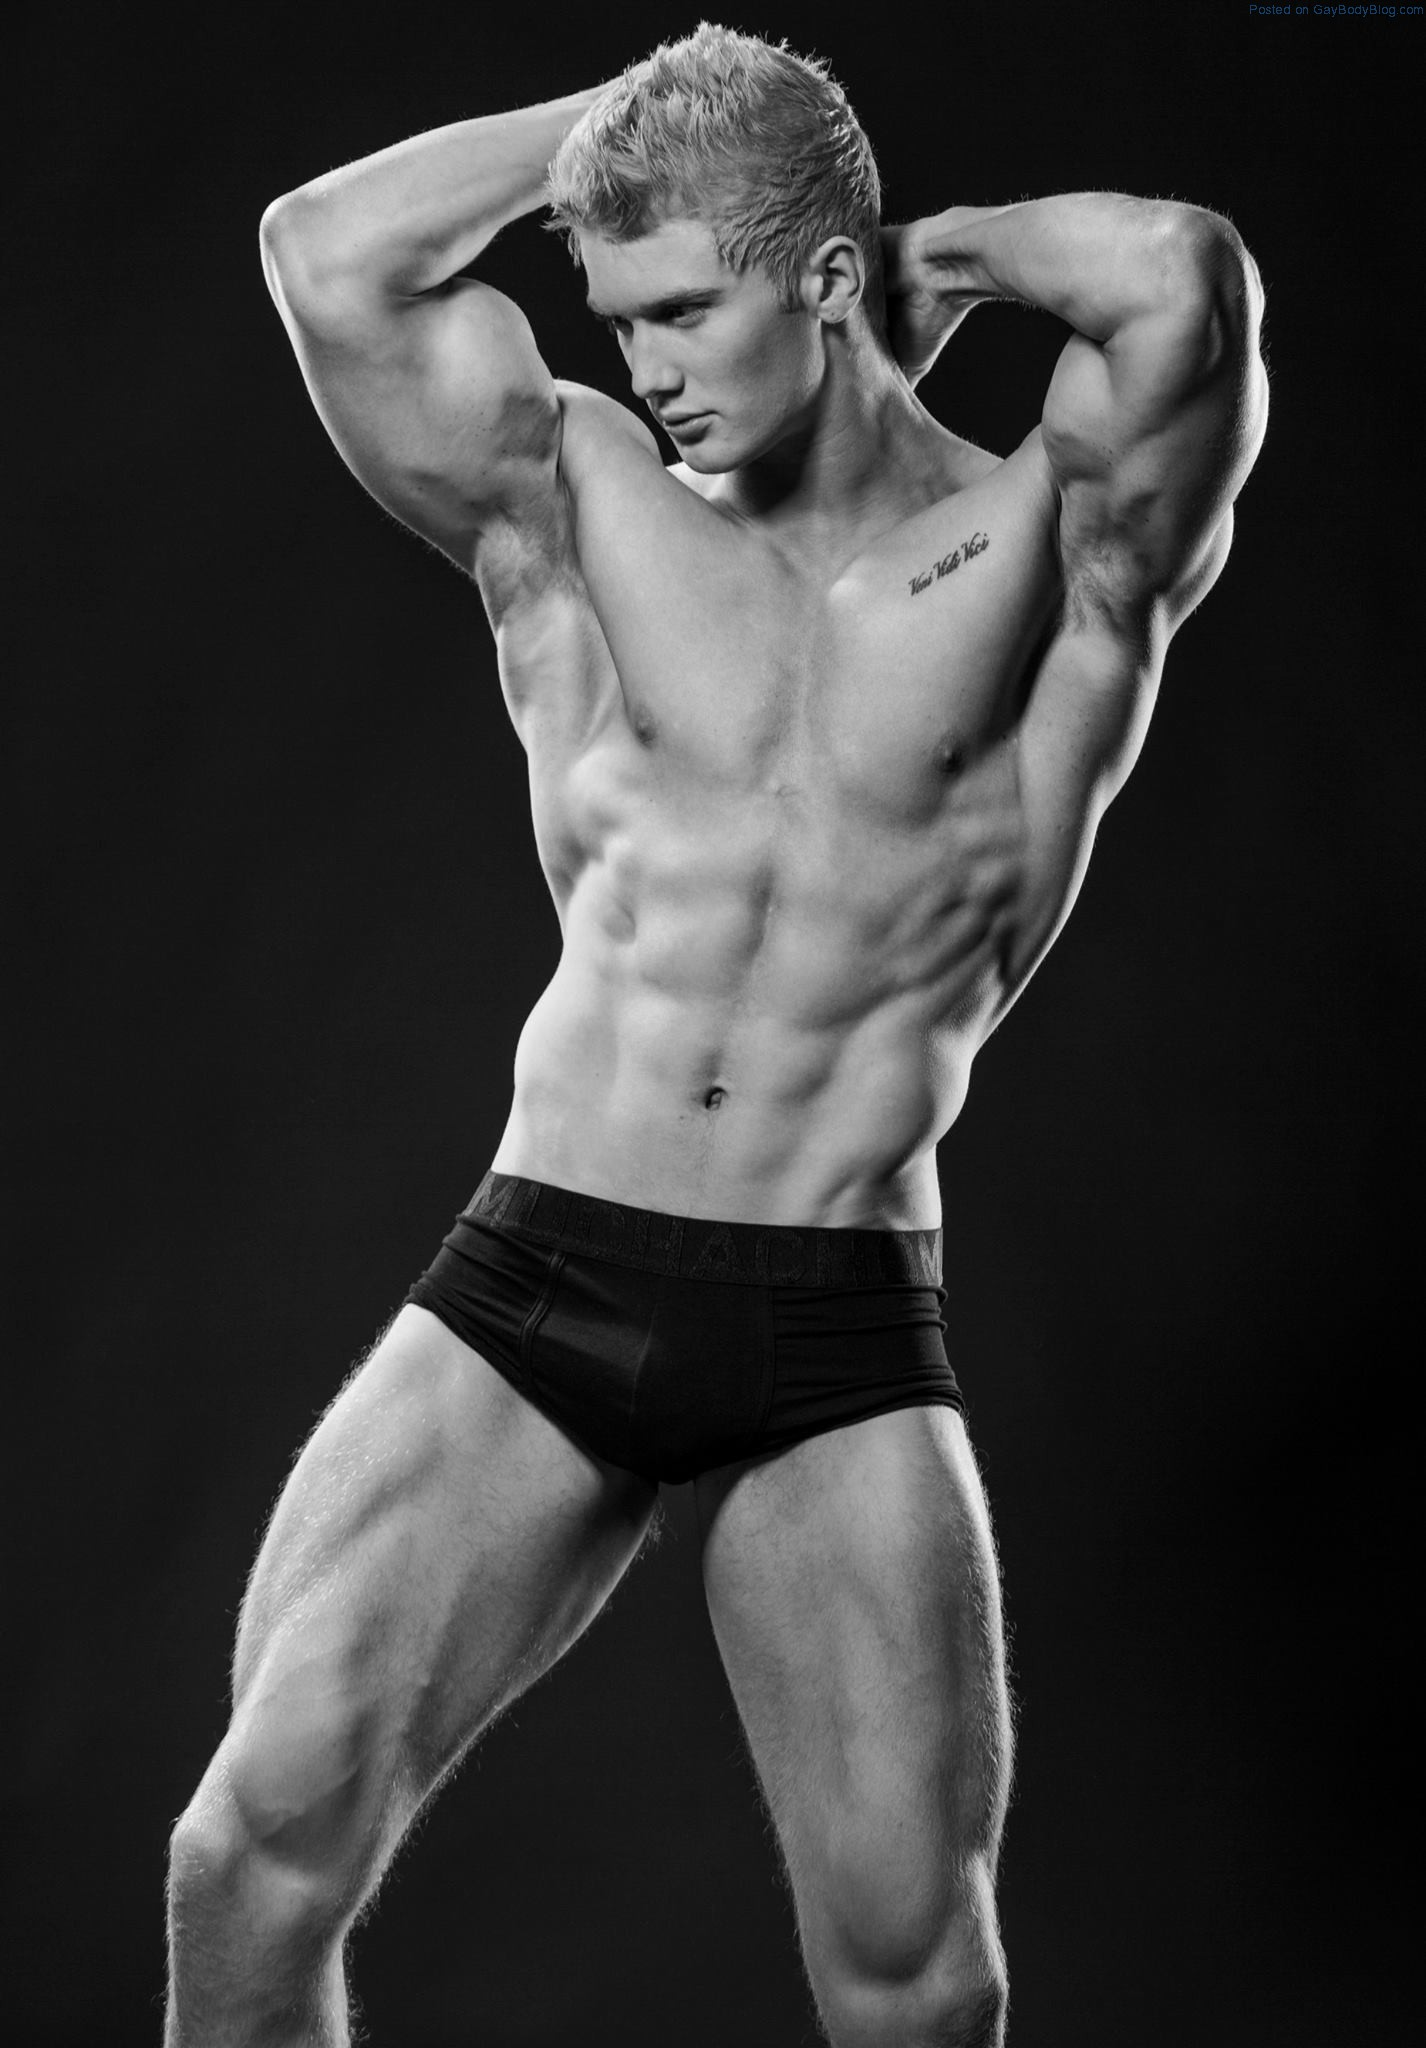 Blond Muscle Stud Zac Aynsley - Gay Body Blog - featuring